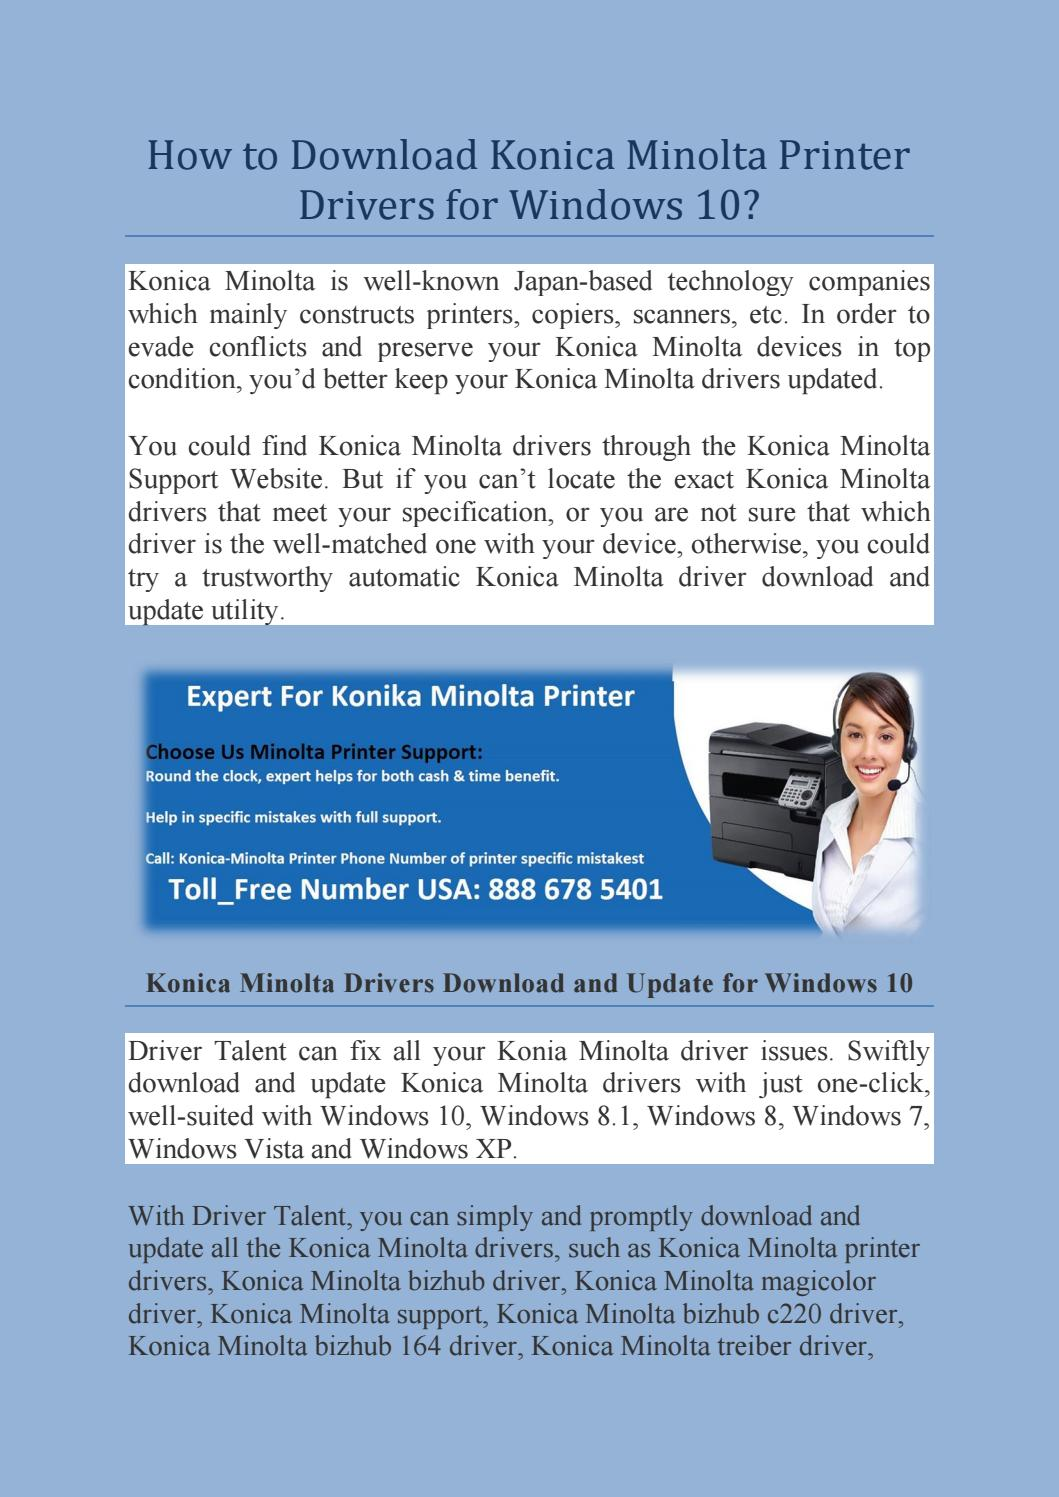 How To Download Konica Minolta Printer Drivers For Windows 10 By Printer Phonenumber Issuu